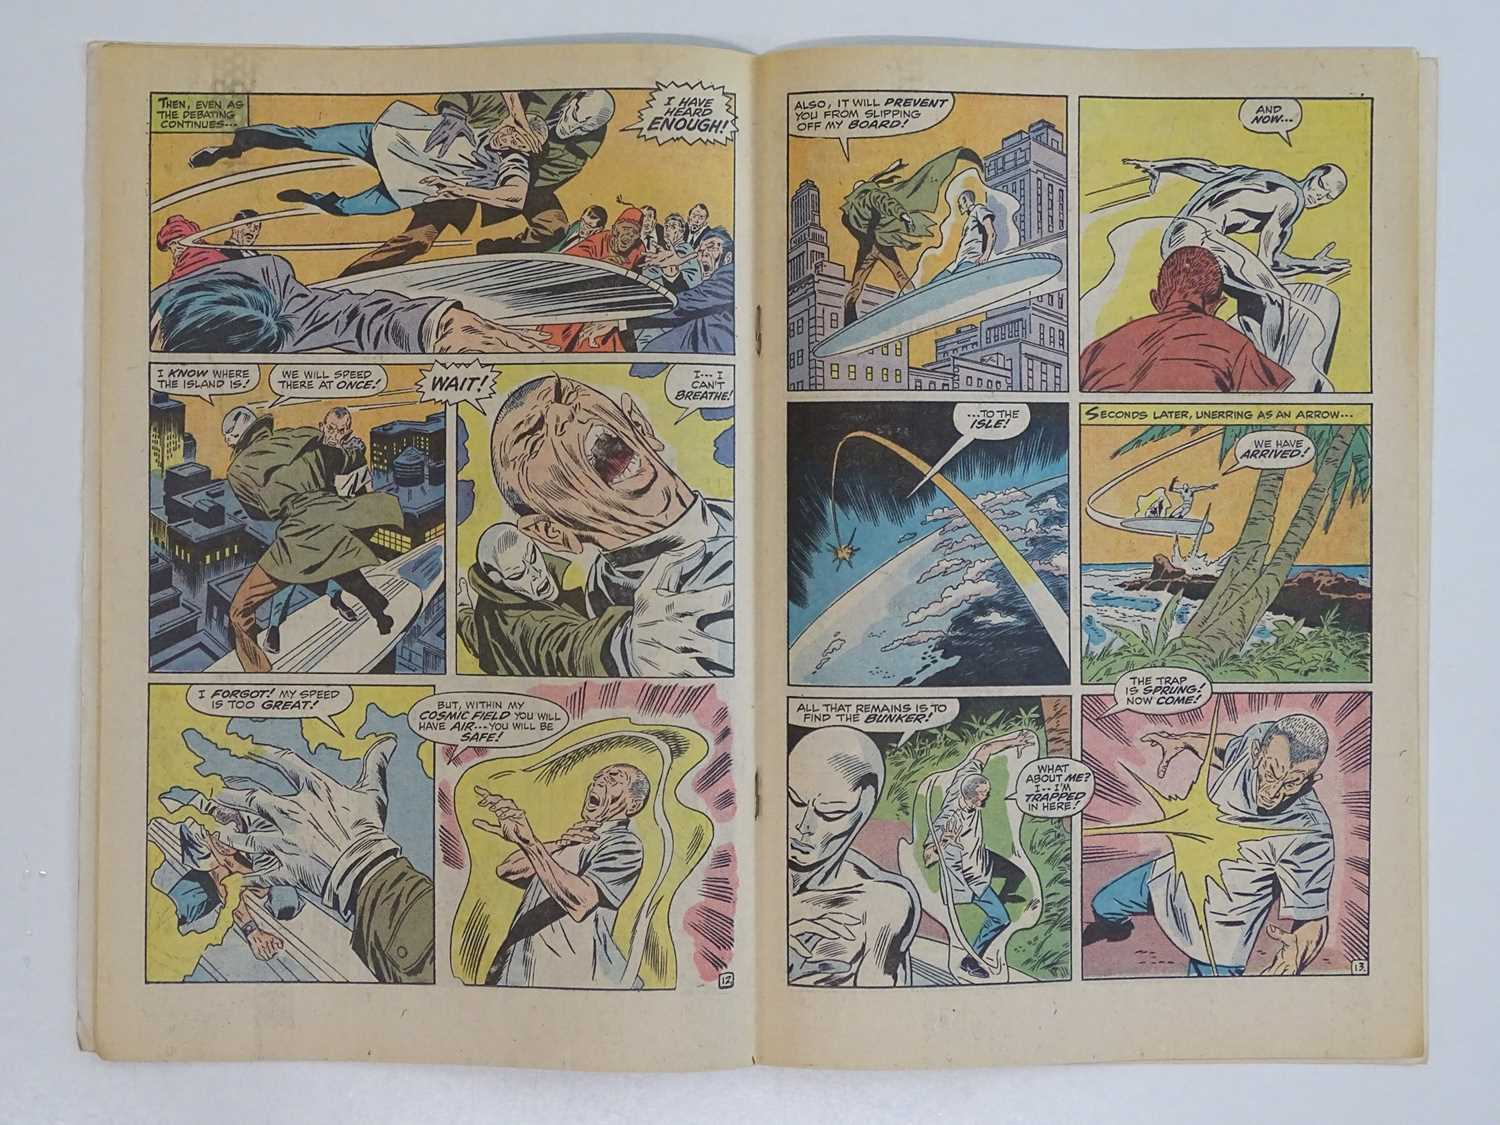 SILVER SURFER #13 - (1970 - MARVEL - UK Cover Price) - First appearance and origin of Doomsday Man - - Image 5 of 9